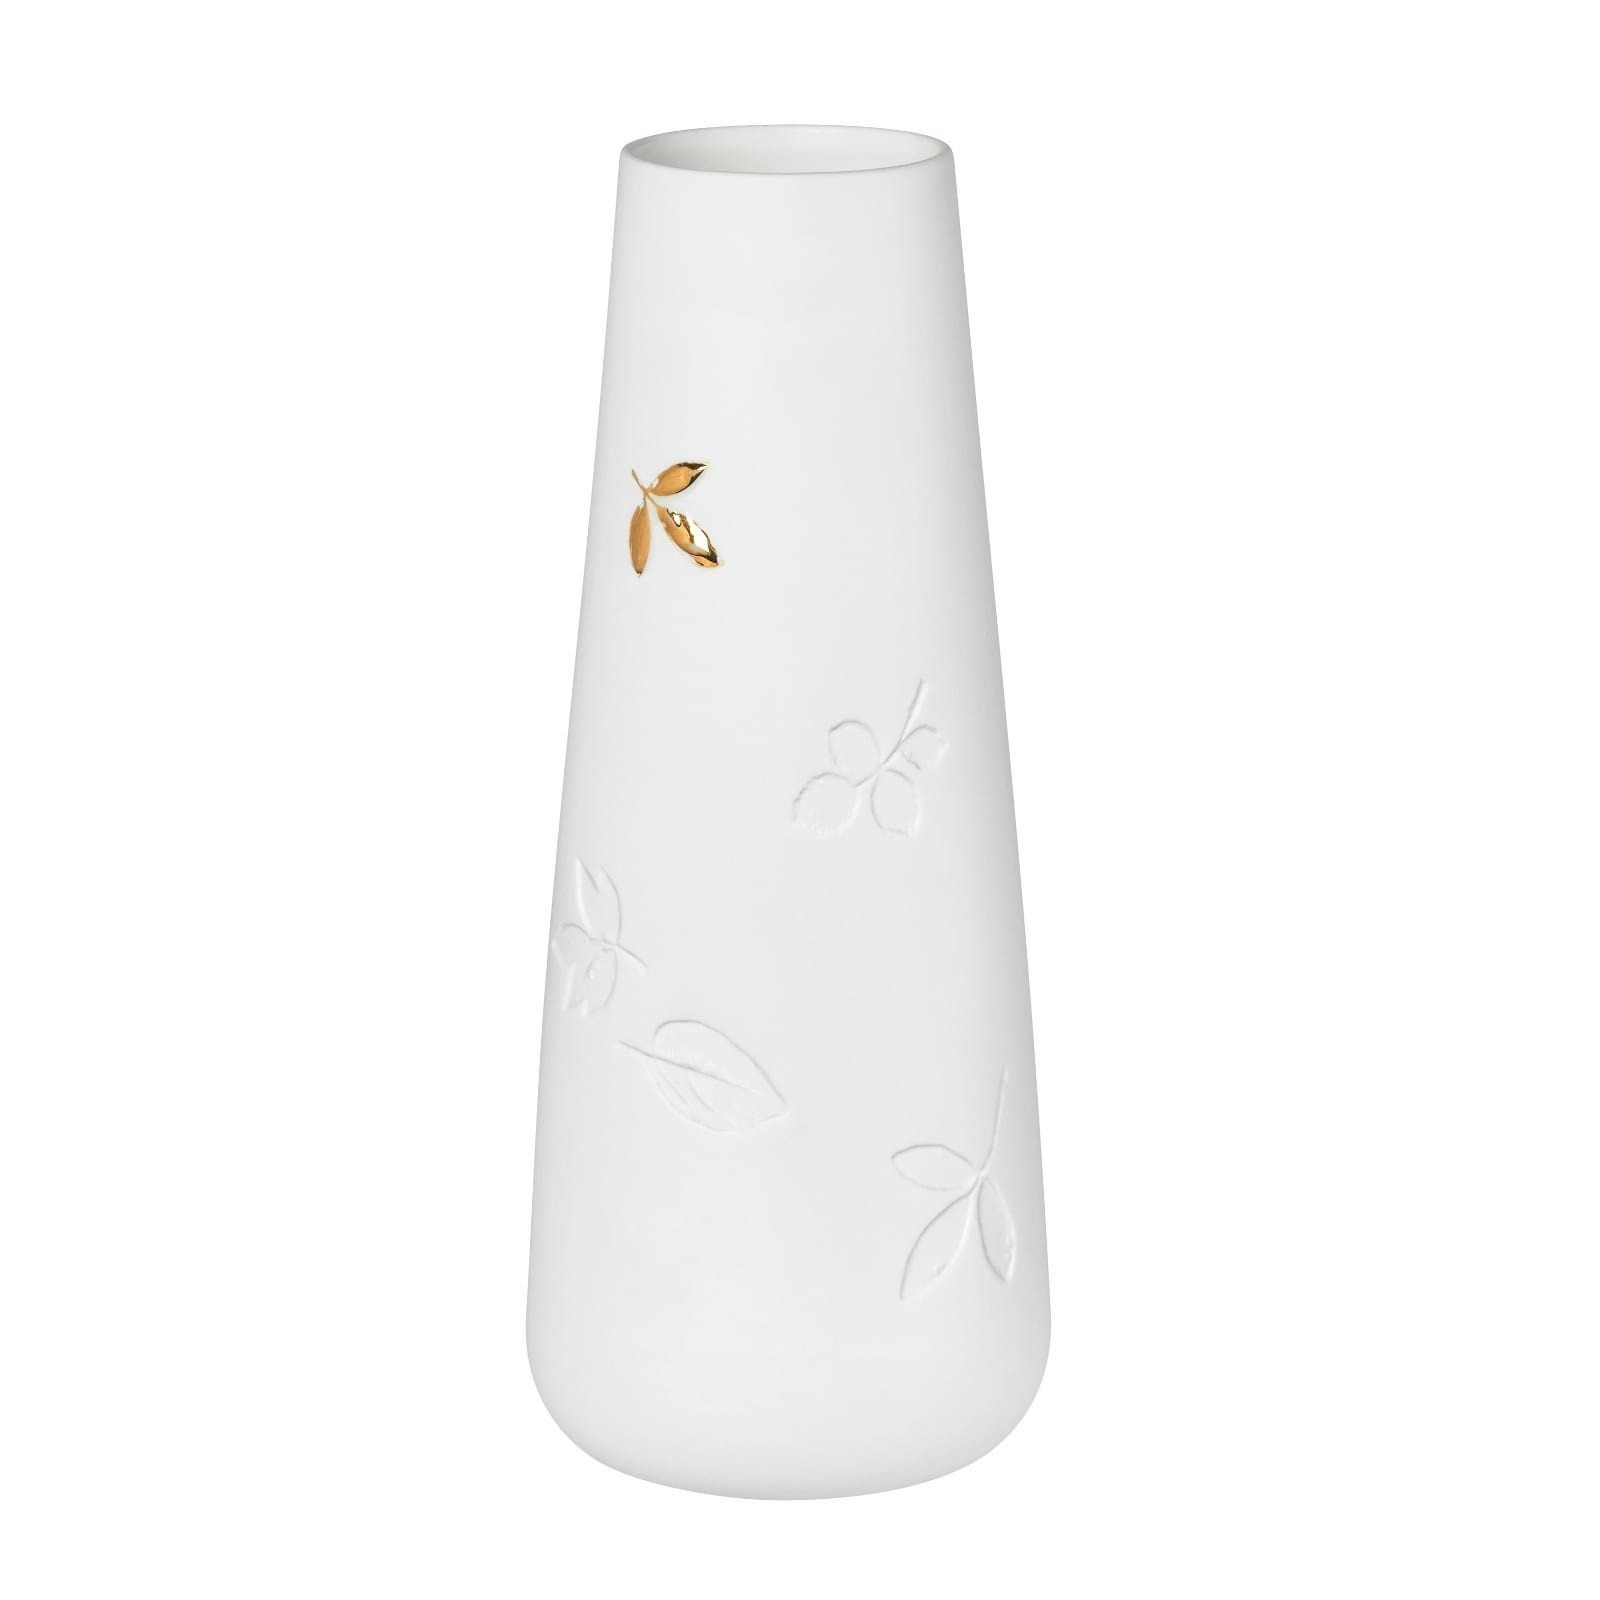 Golden Leaf Porcelain Vase (Small) - Raeder